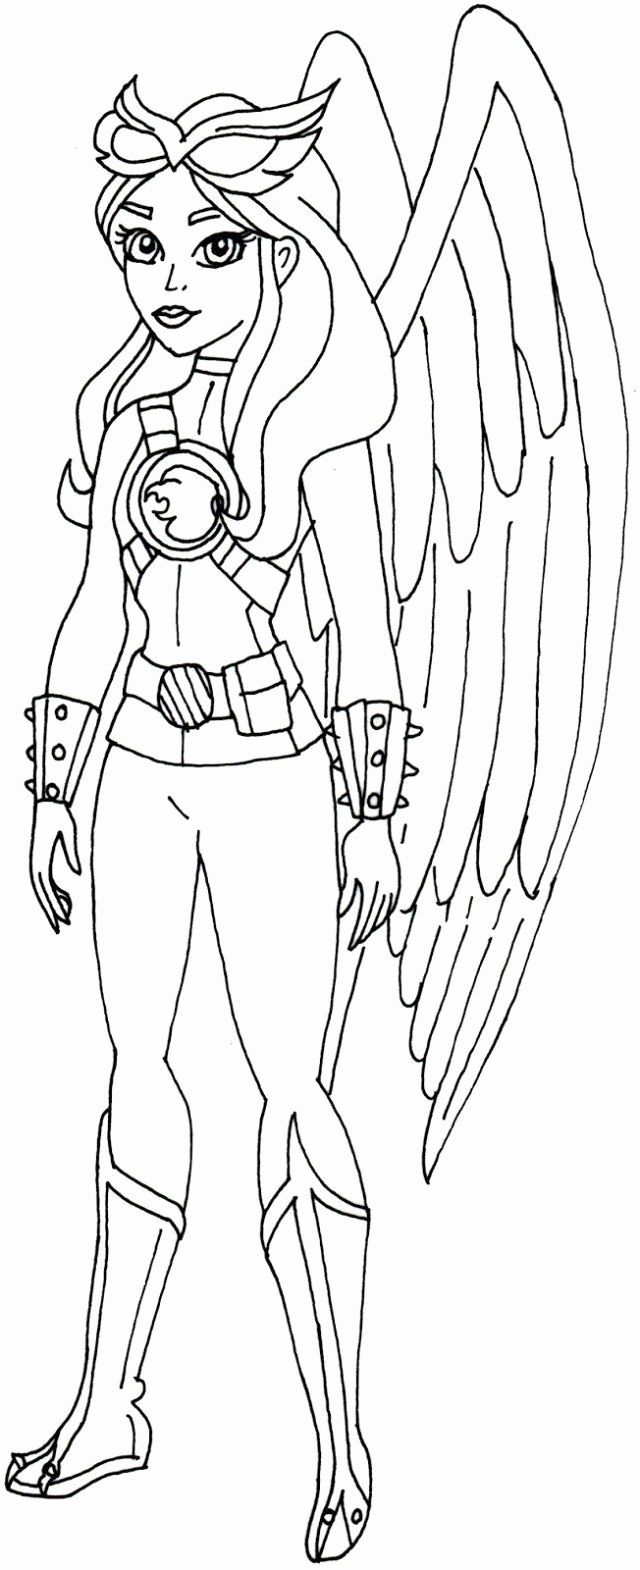 Coloring Pages for Kids Of Dc Superhero Girls Poison Ivy ...